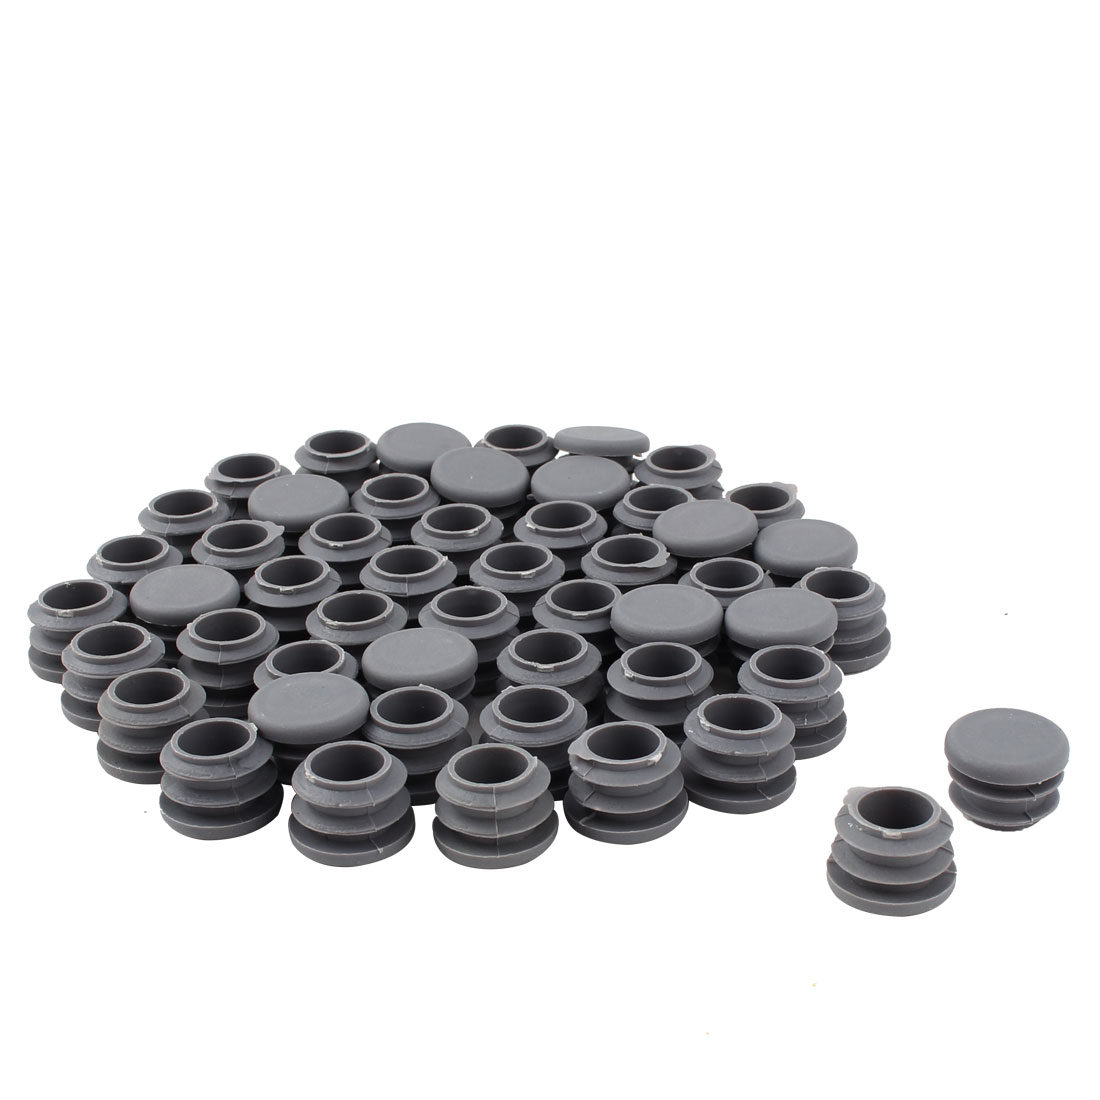 Furniture Table Chair Plastic Round Tube Pipe Insert Cover Protector Gray 19mm Dia 40pcs